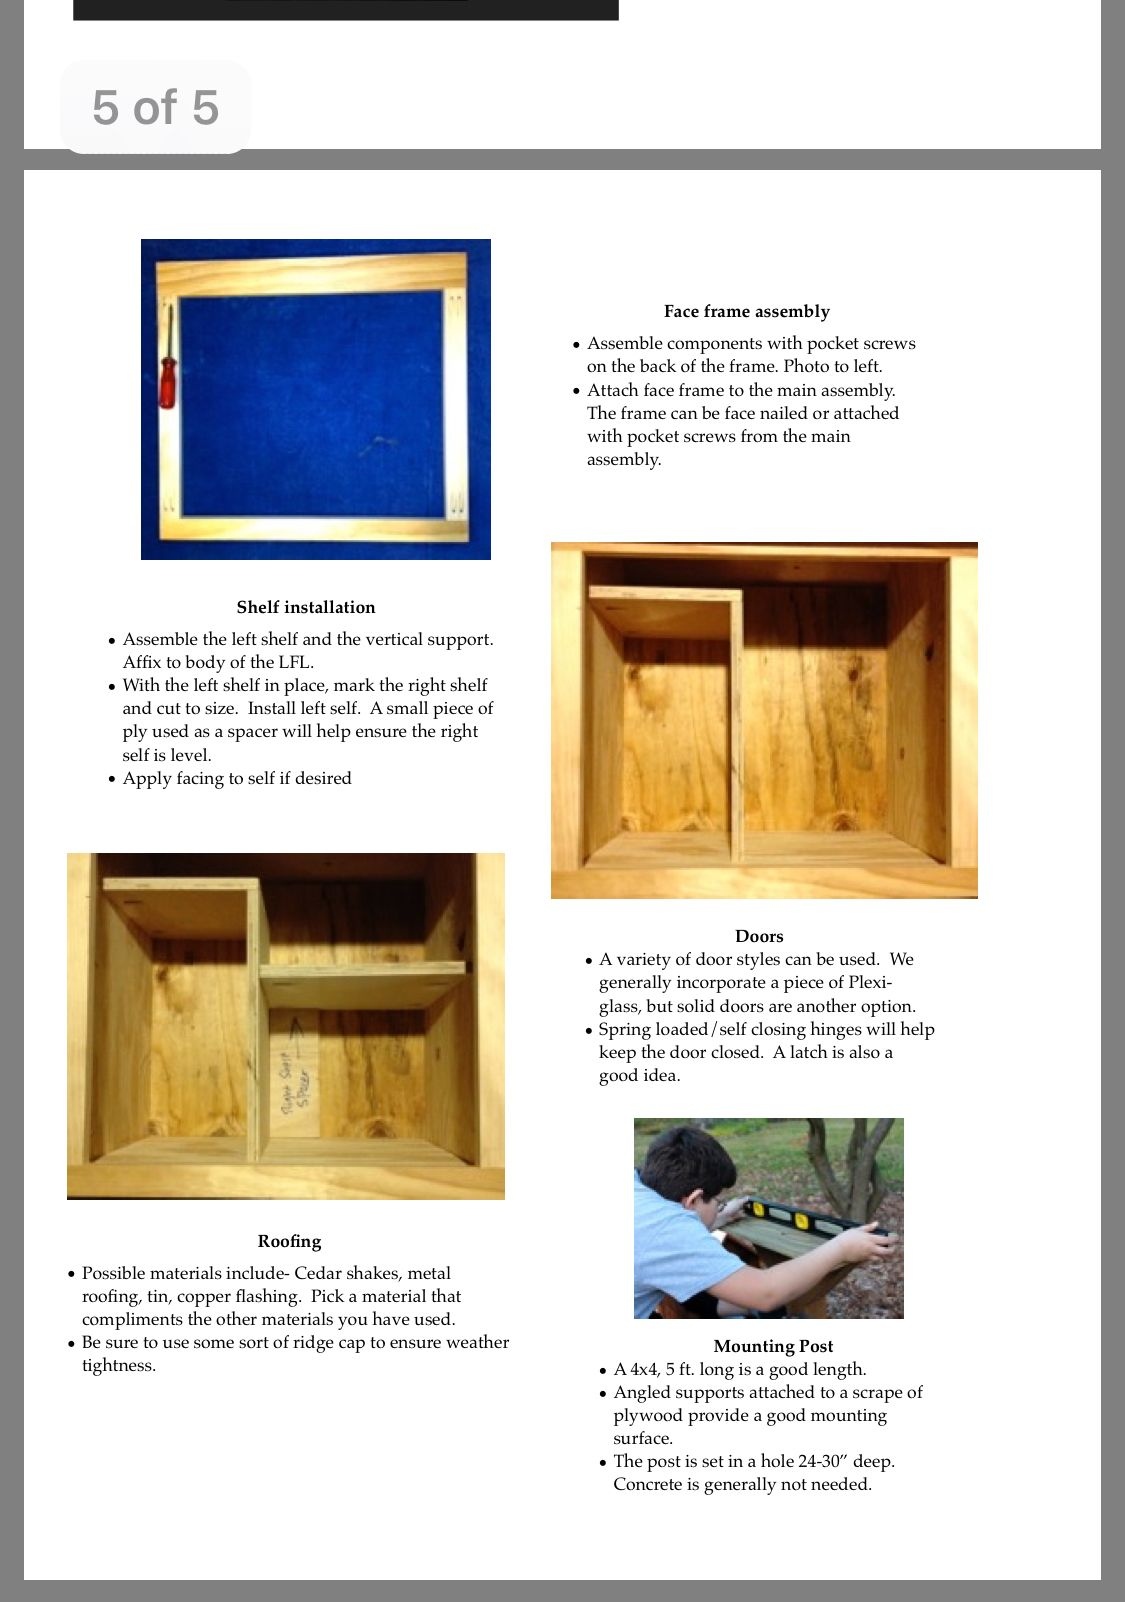 Pin By Gail Ito On Little Free Library Little Free Libraries Pocket Screws Face Framing